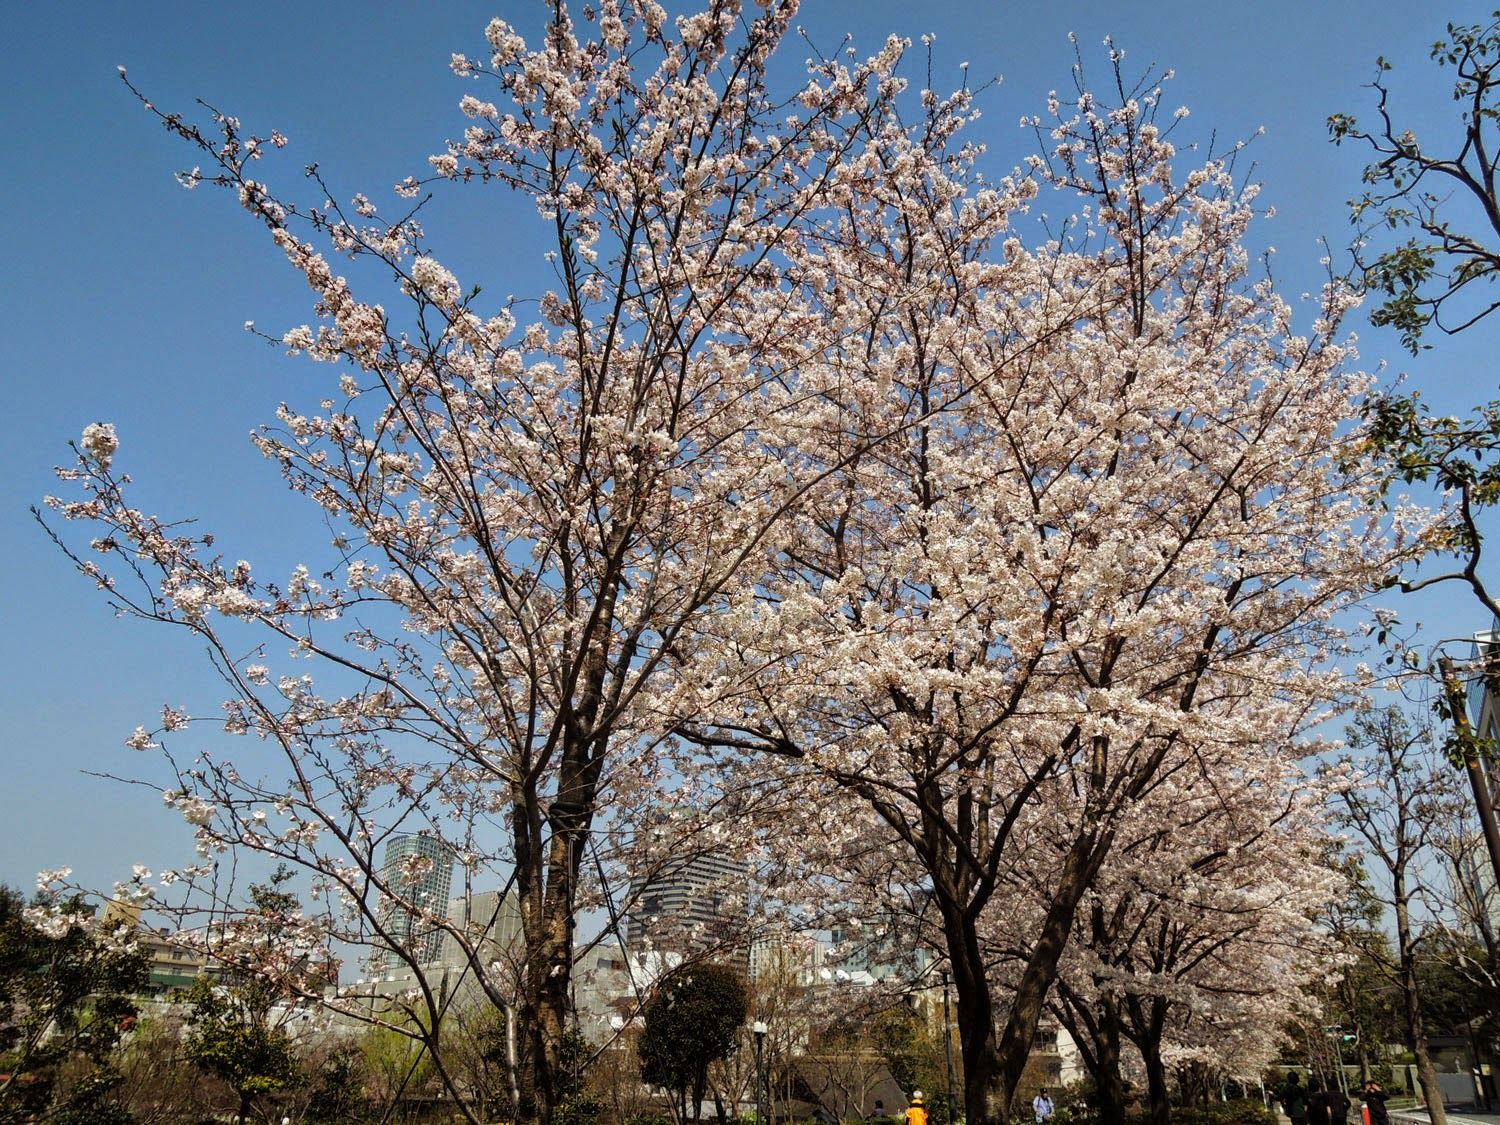 MIDTOWN BLOSSOM 2015